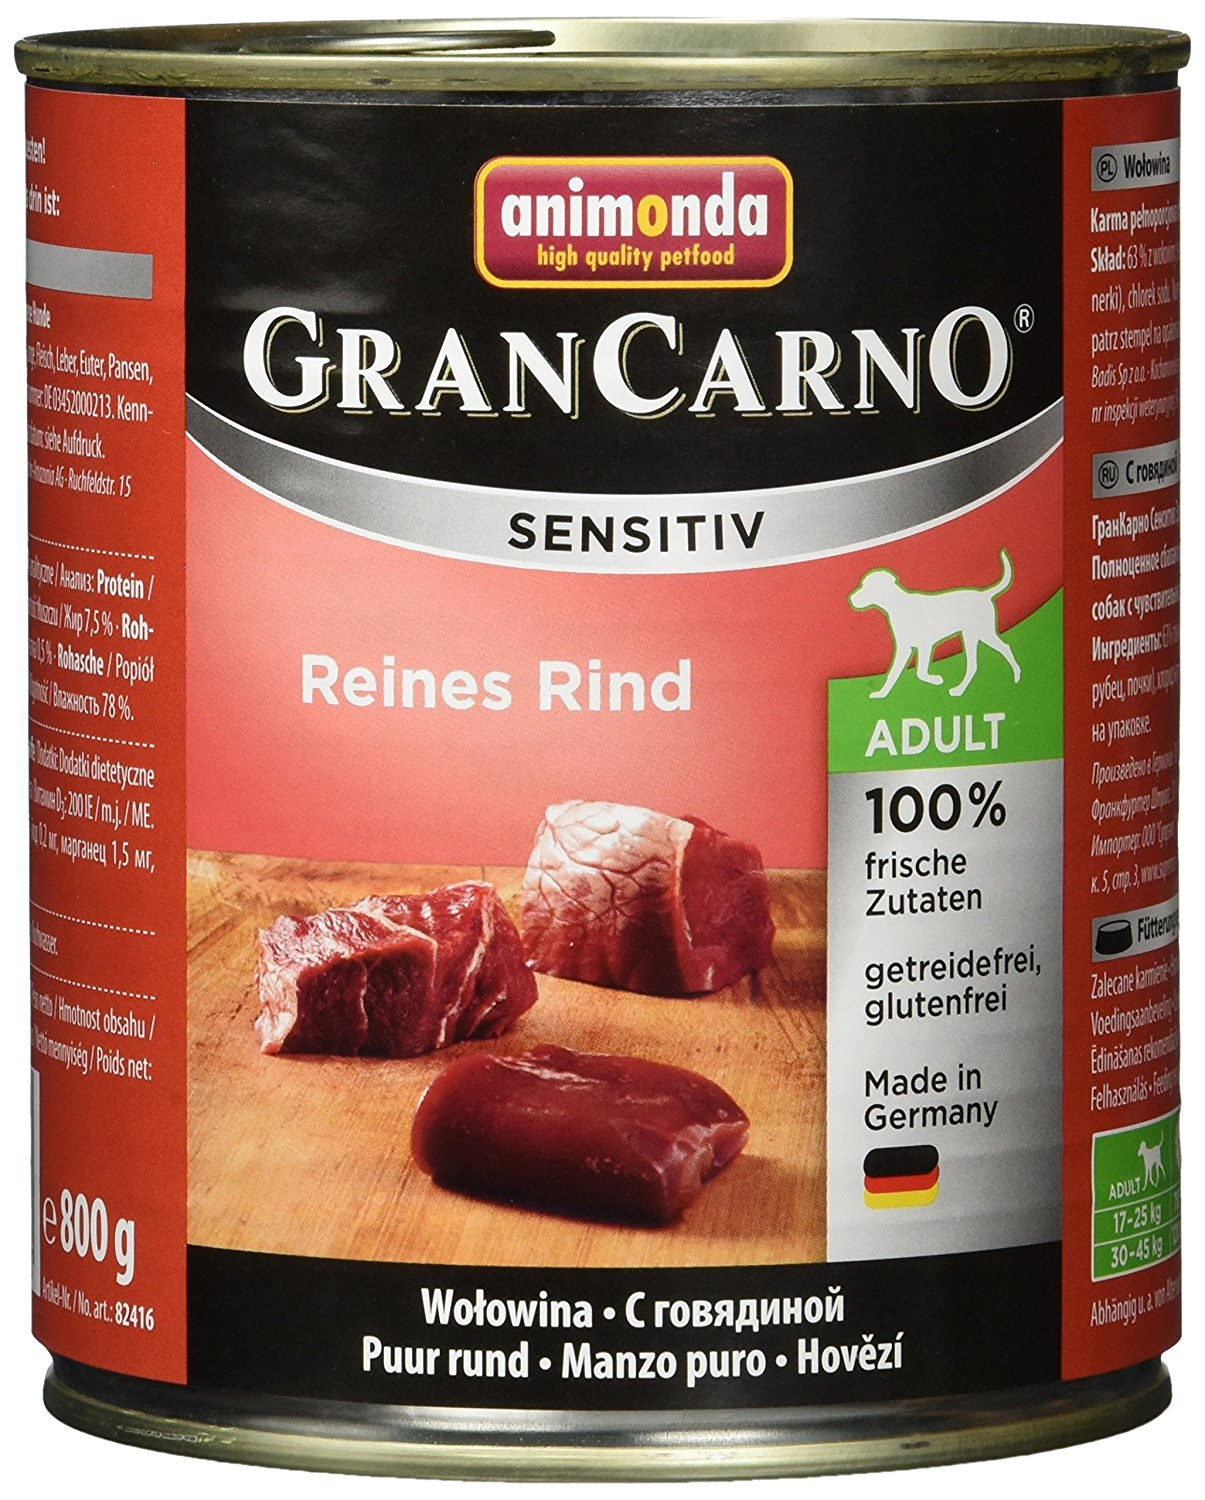 Animonda Gran Carno Hundefutter Sensitive Adult Reines Rind, 6er Pack